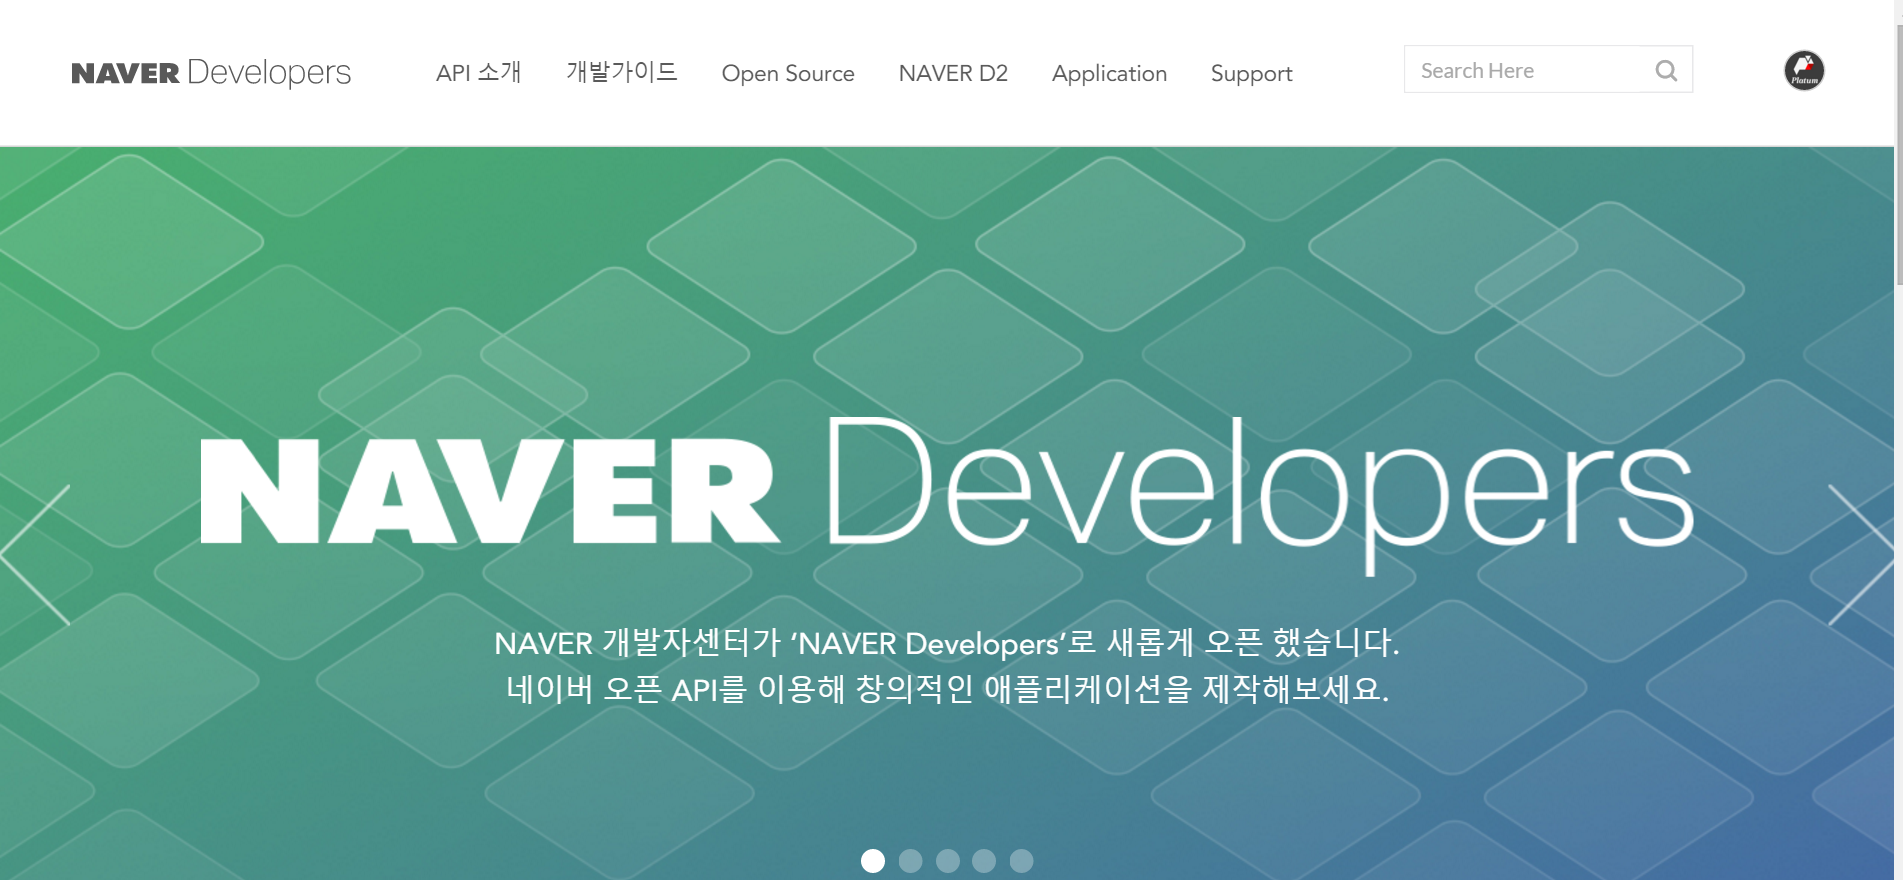 NAVER Developers